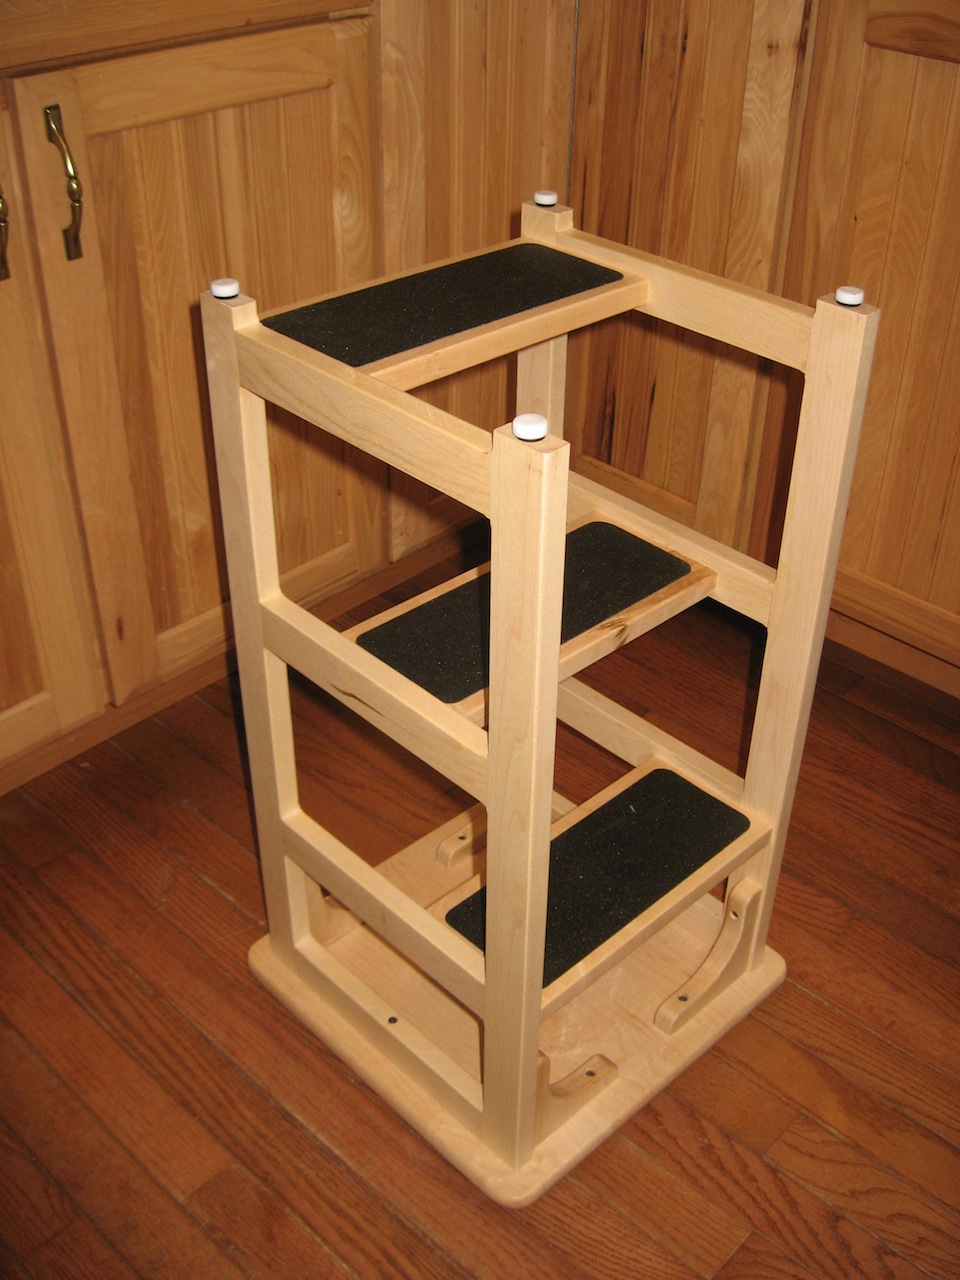 Miraculous Stans Hoosier Step Stool The Wood Whisperer Alphanode Cool Chair Designs And Ideas Alphanodeonline